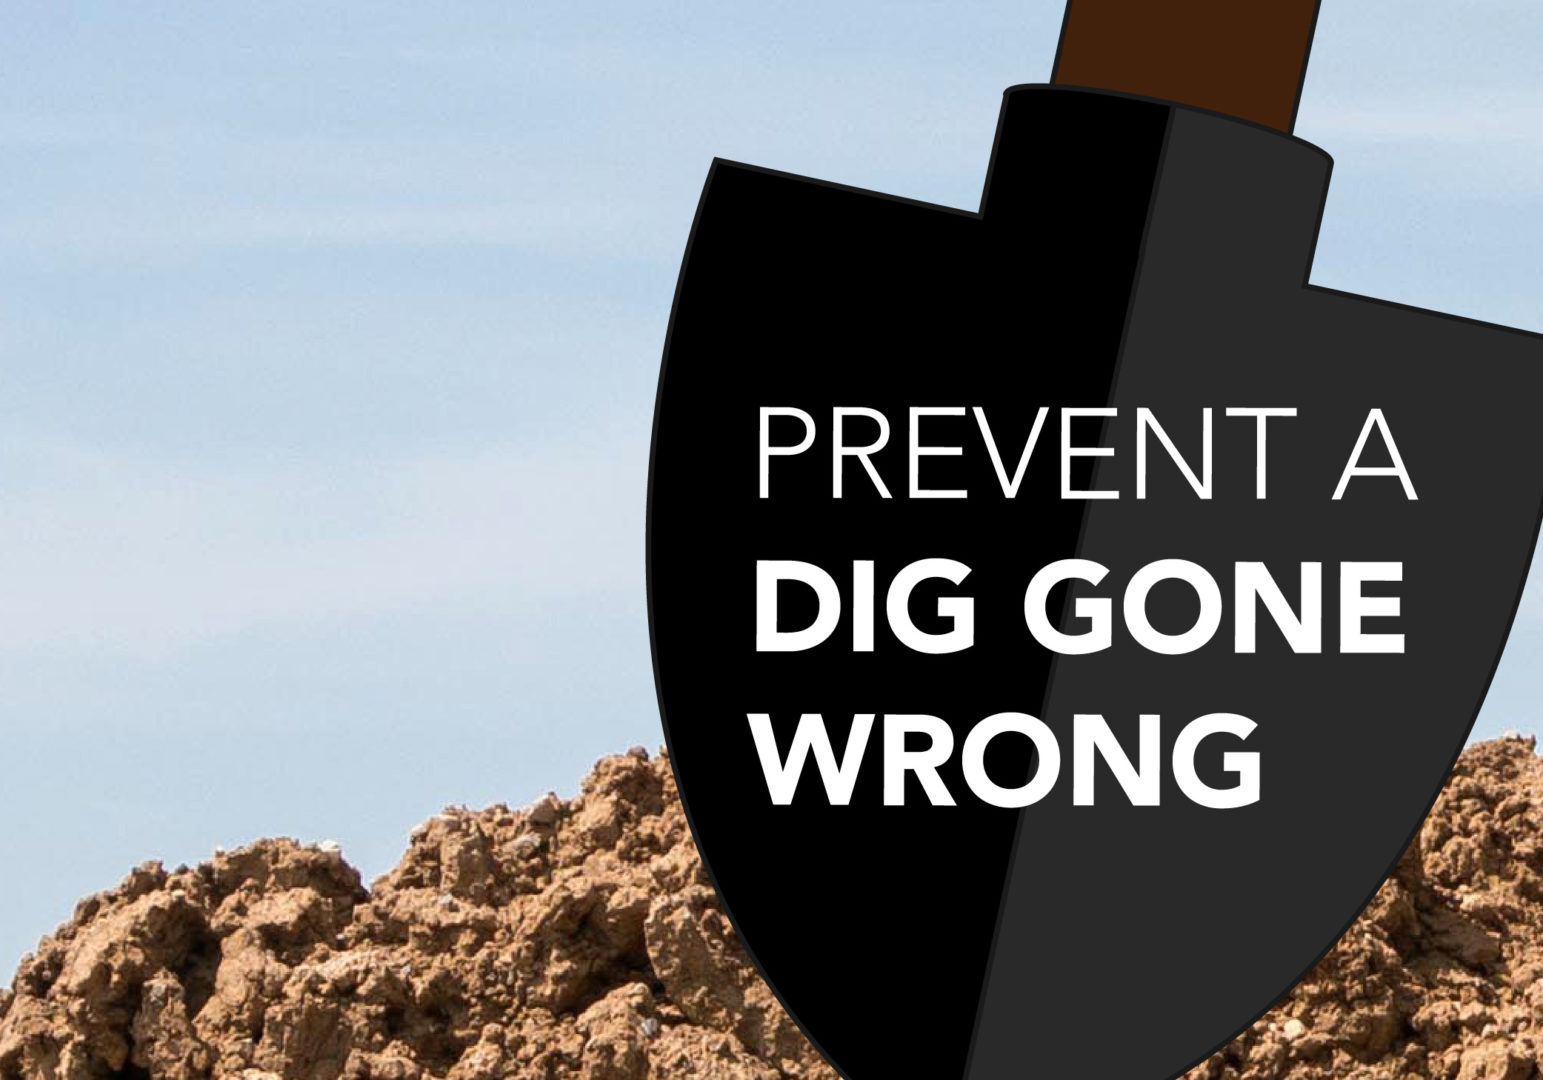 Prevent a Dig Gone Wrong